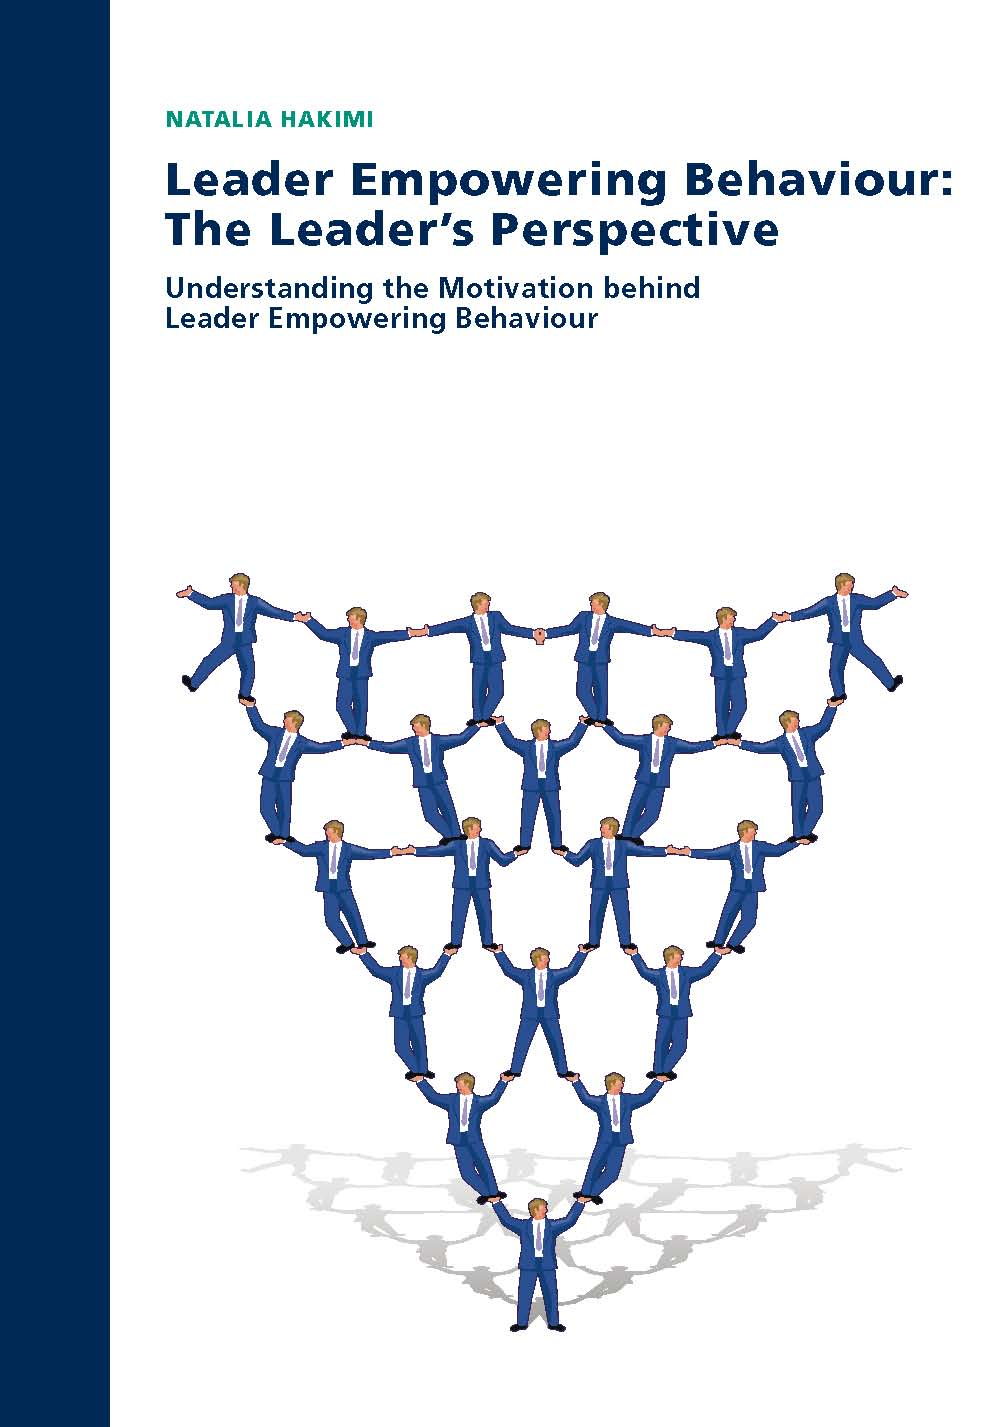 Leader Empowering Behaviour: The Leader's Perspective